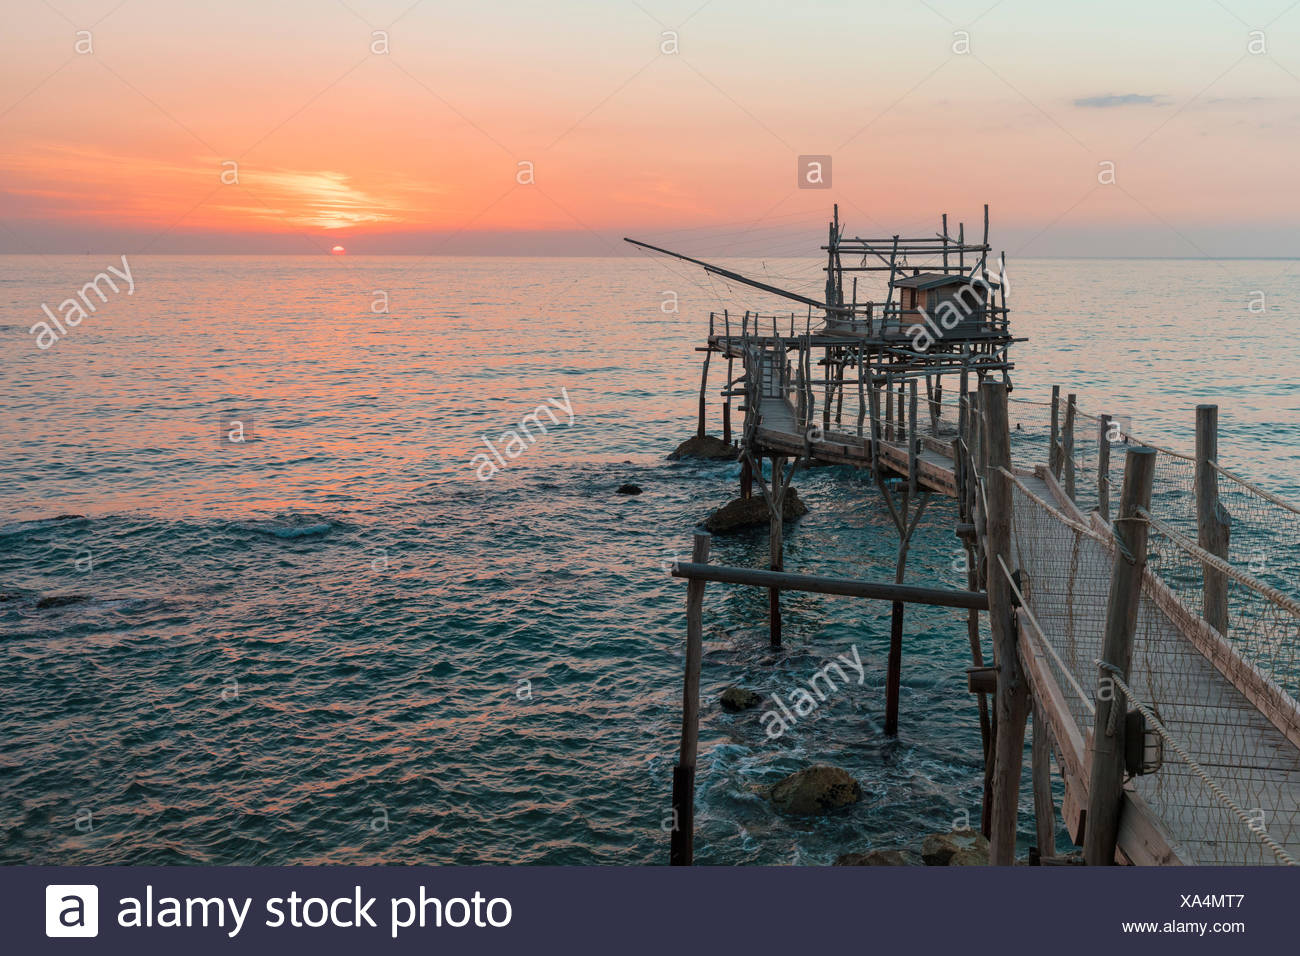 View of Costa dei Trabocchi, Trabocco is an old fishing machine typical of the coast of Abruzzo District, Adriatic Sea, Italy - Stock Image